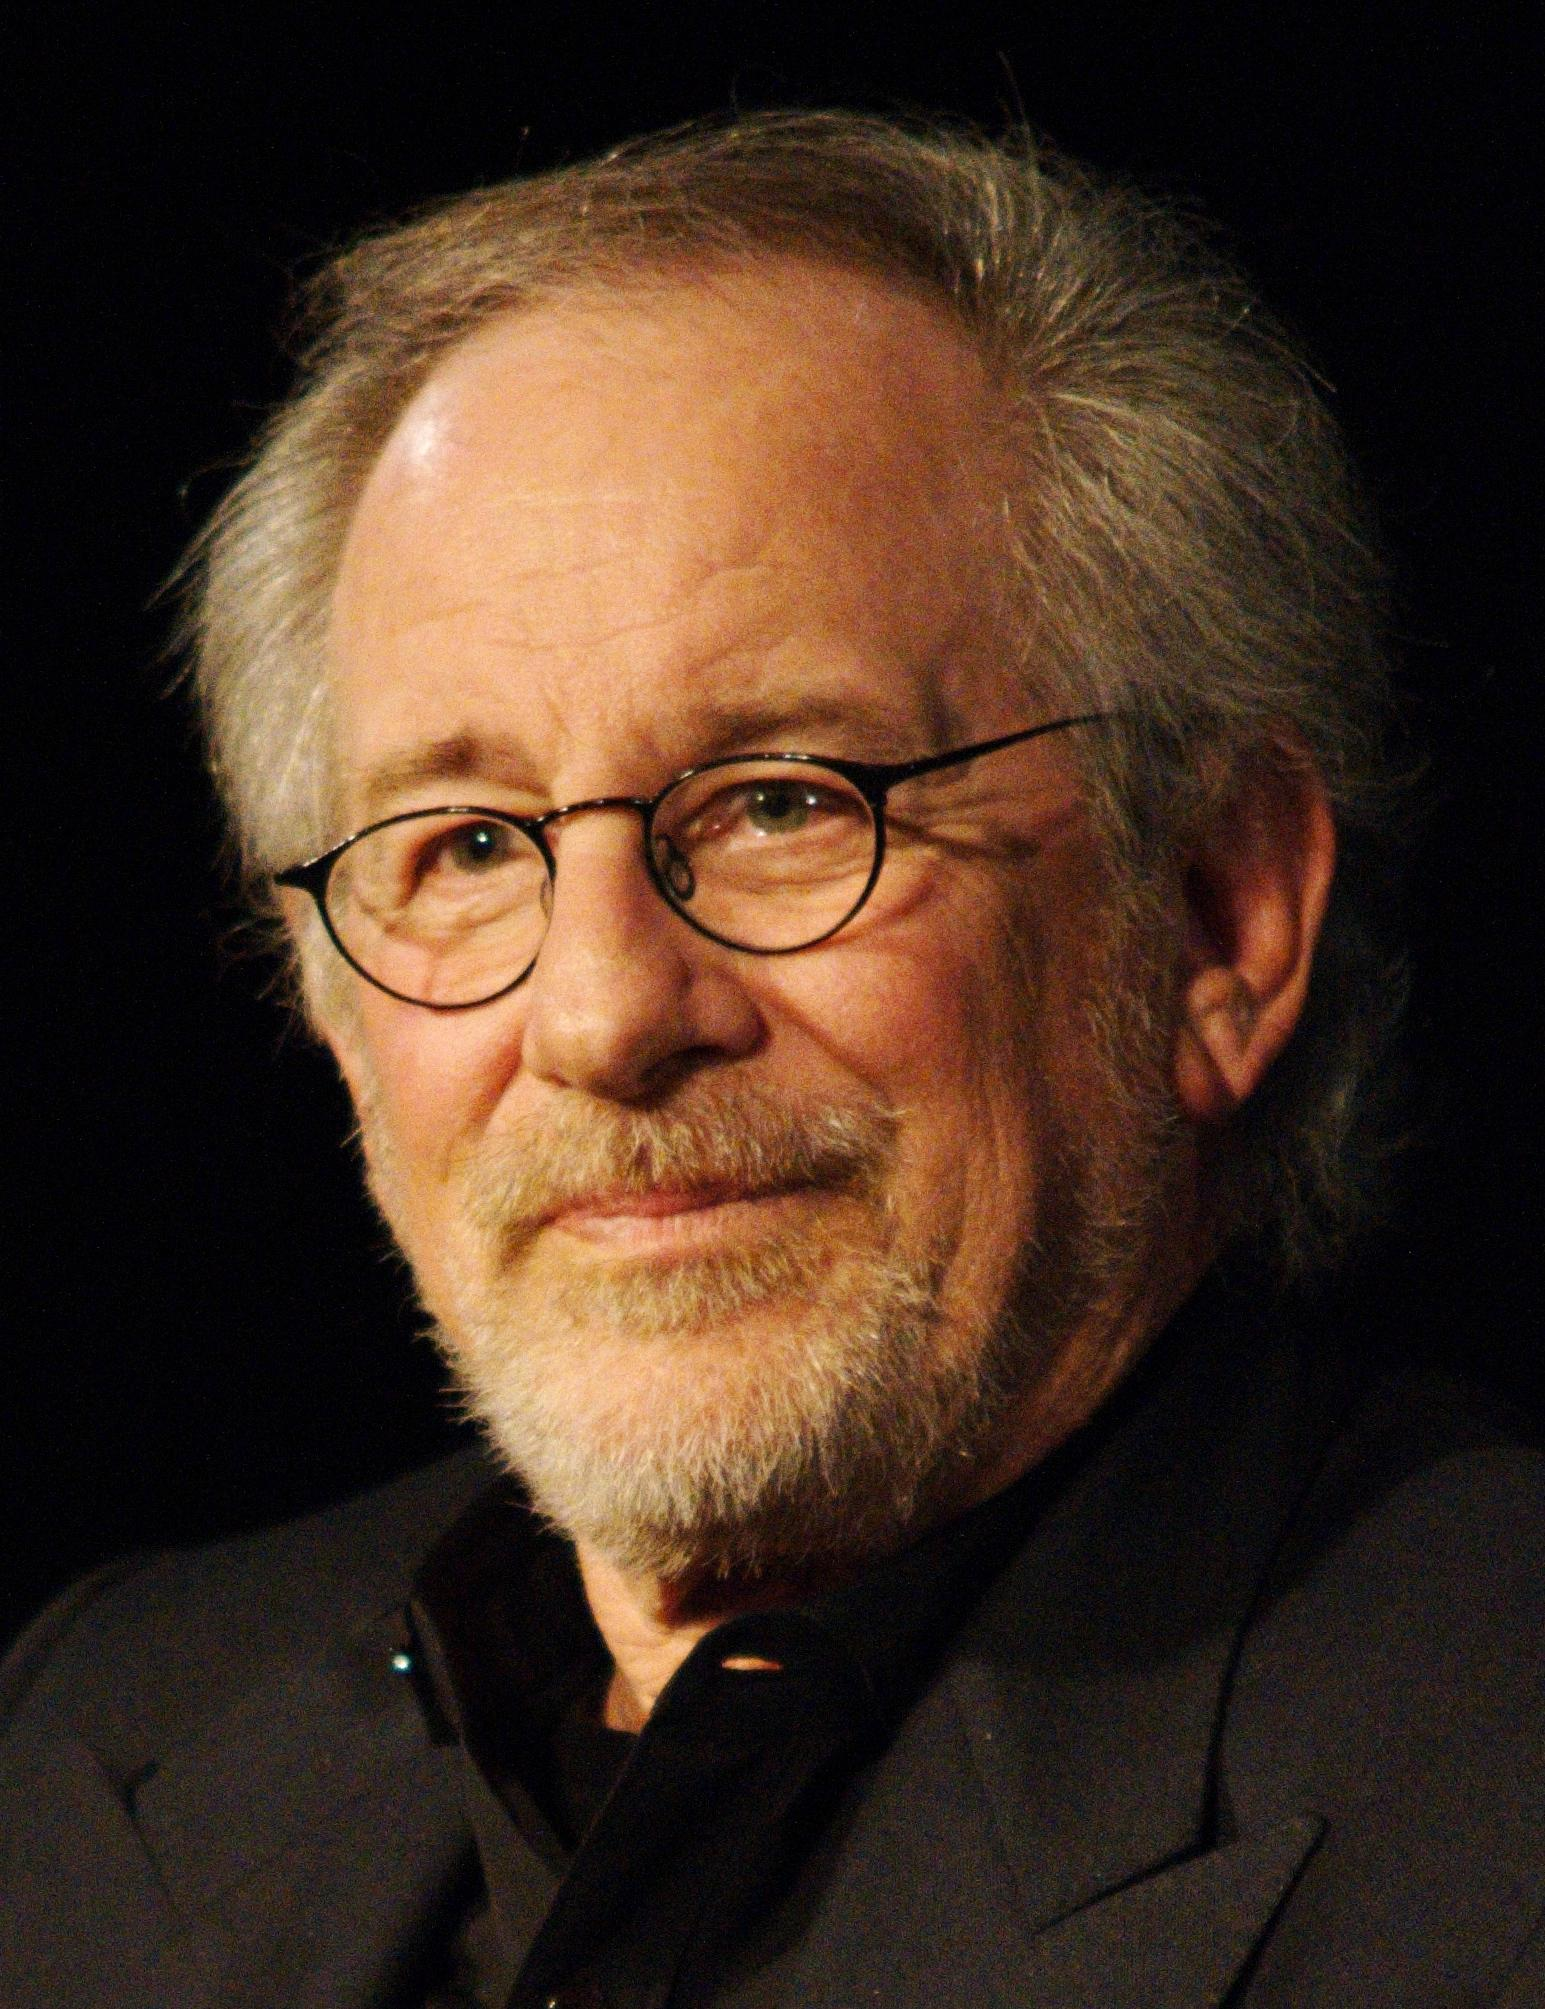 Spielberg at his masterclass at the Cinémathèque Française in January 2012.